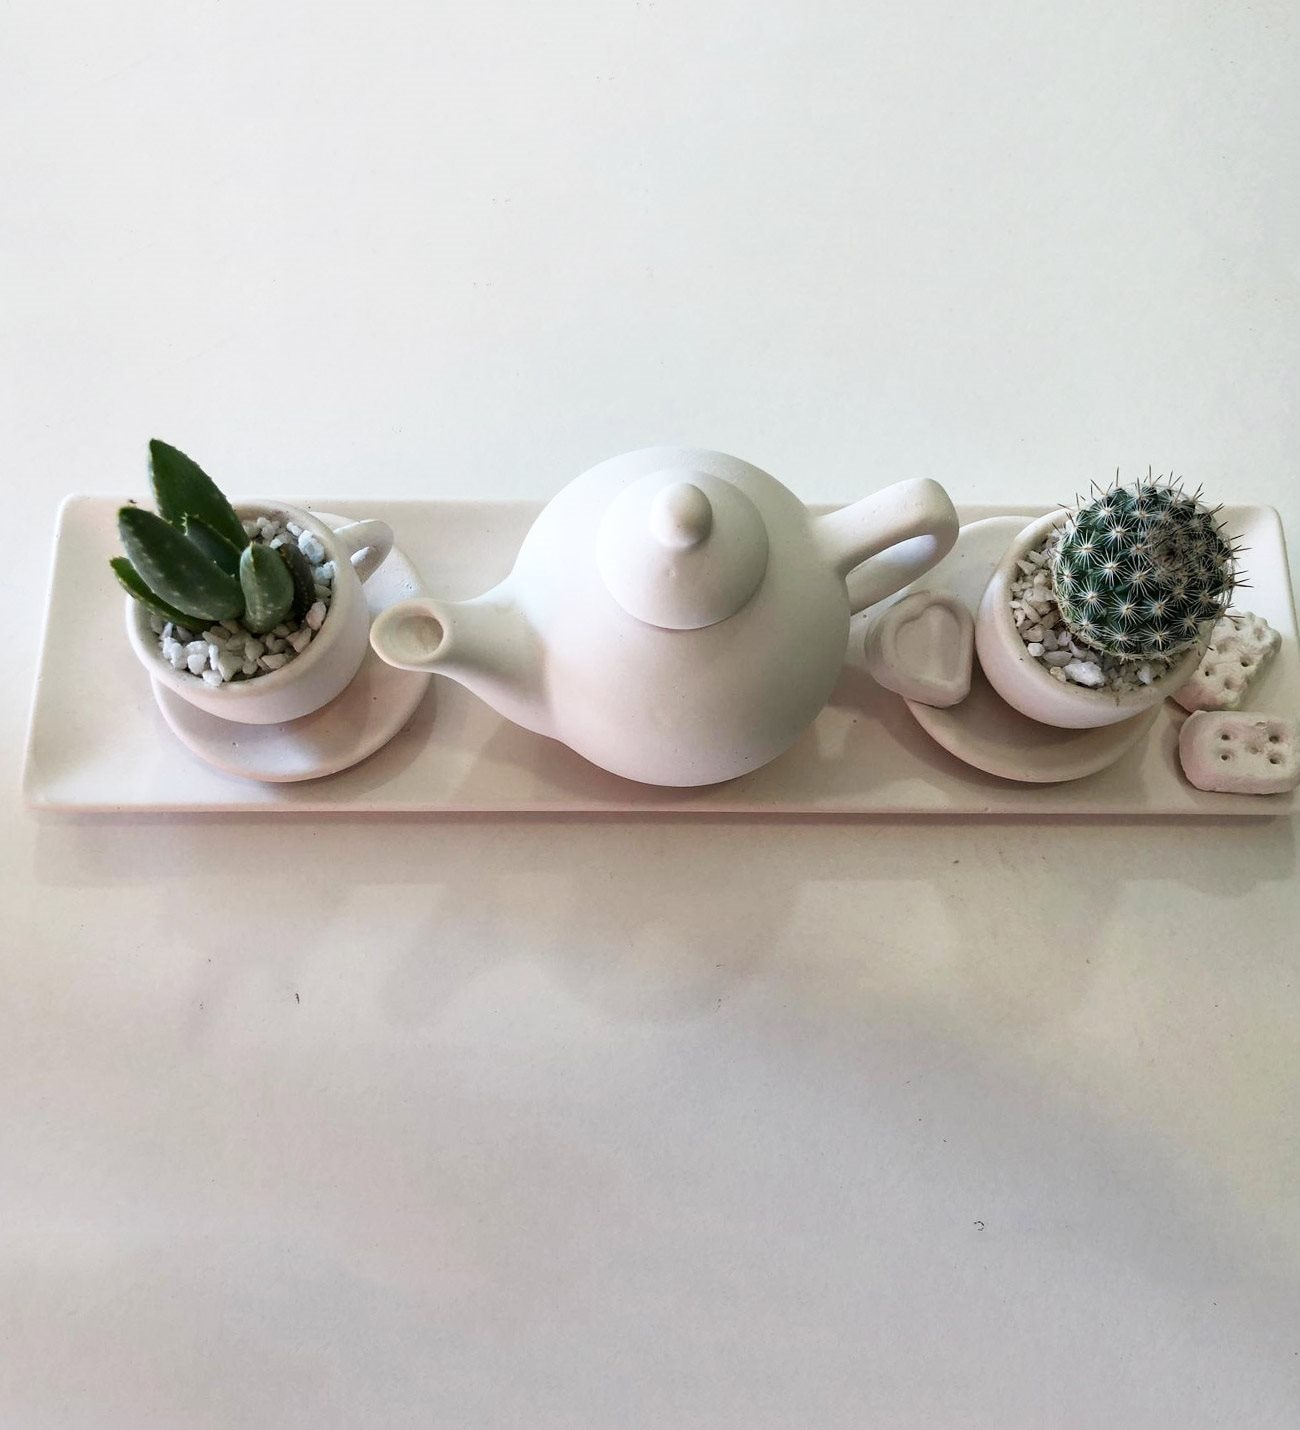 Tea for two - Cactus arrangement and plaster service